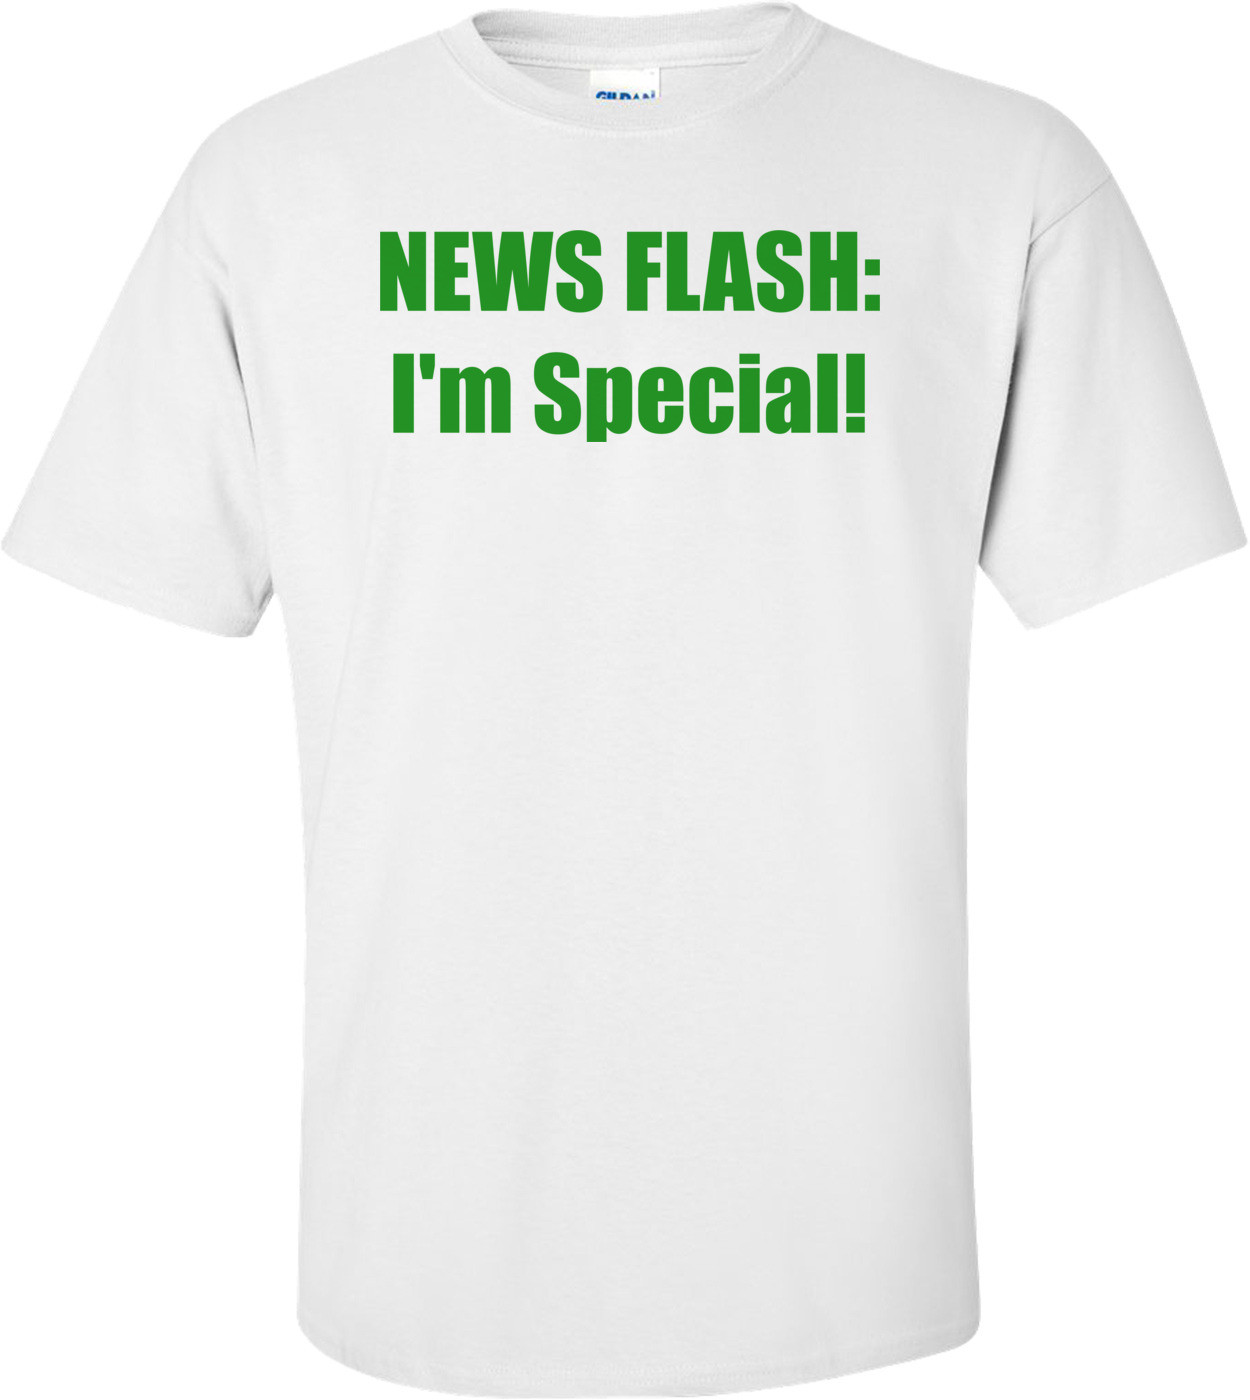 NEWS FLASH: I'm Special! Shirt